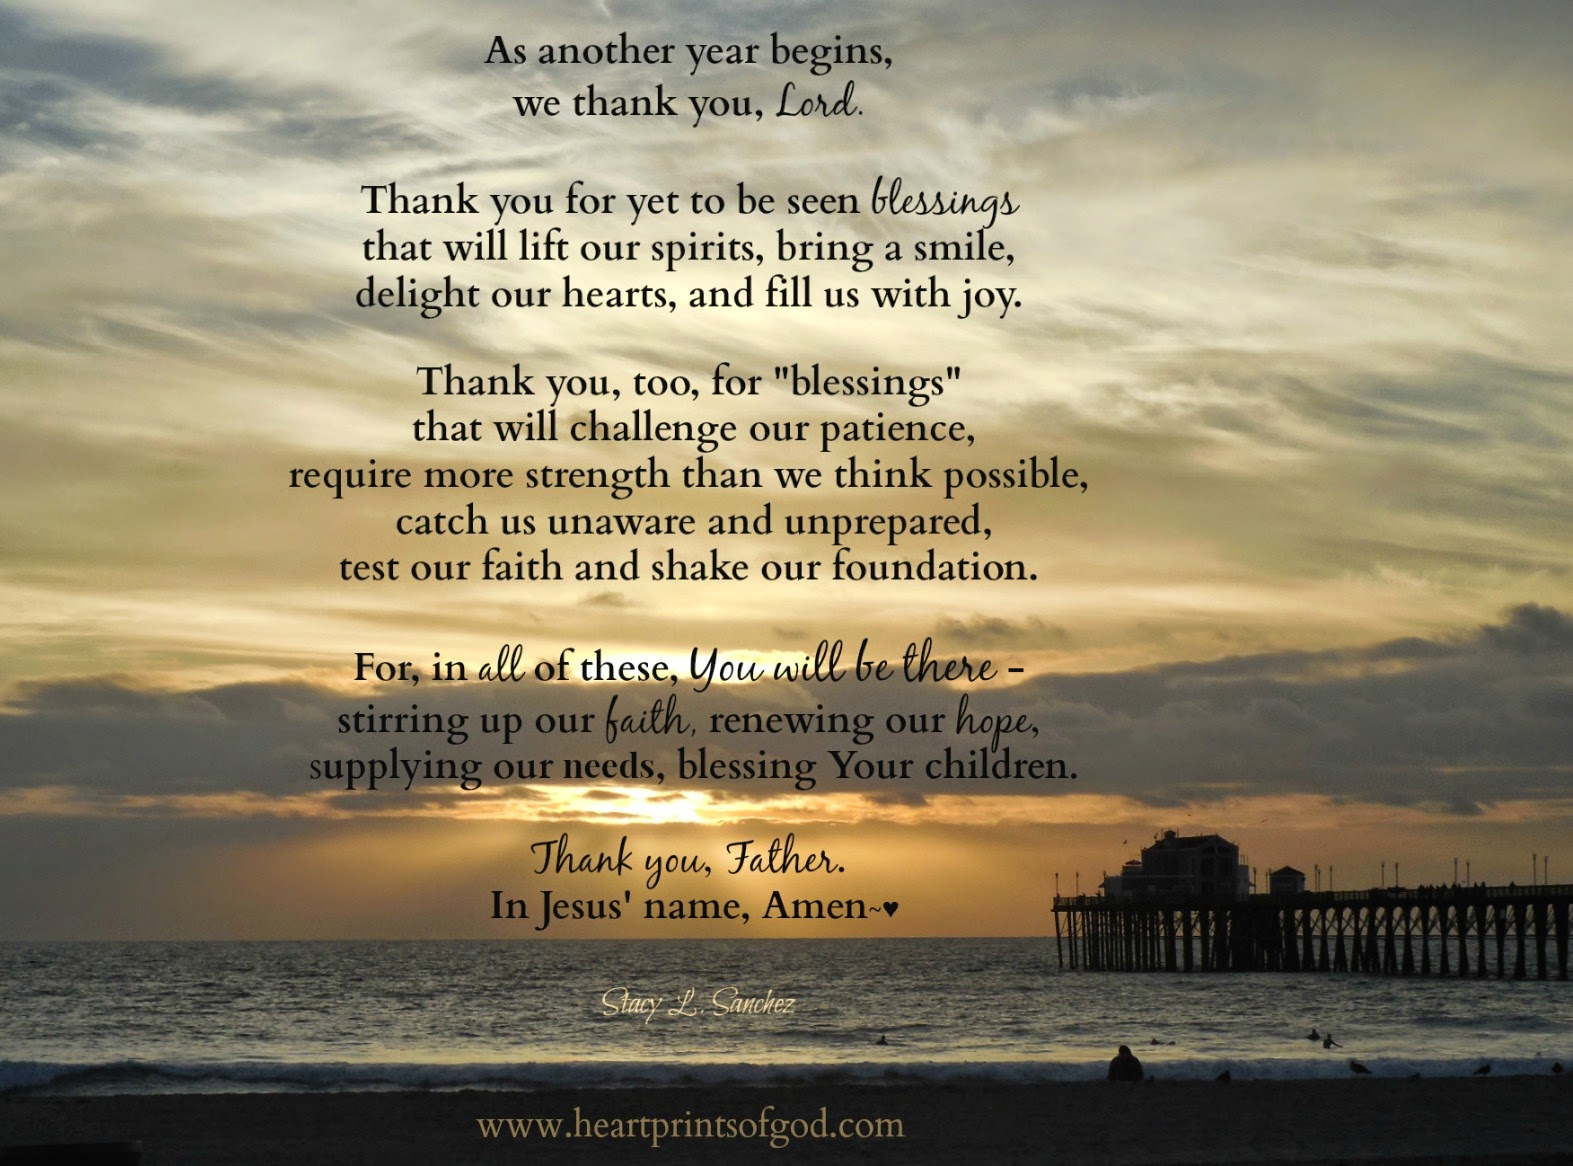 Heartprints of God: New Year Blessings~